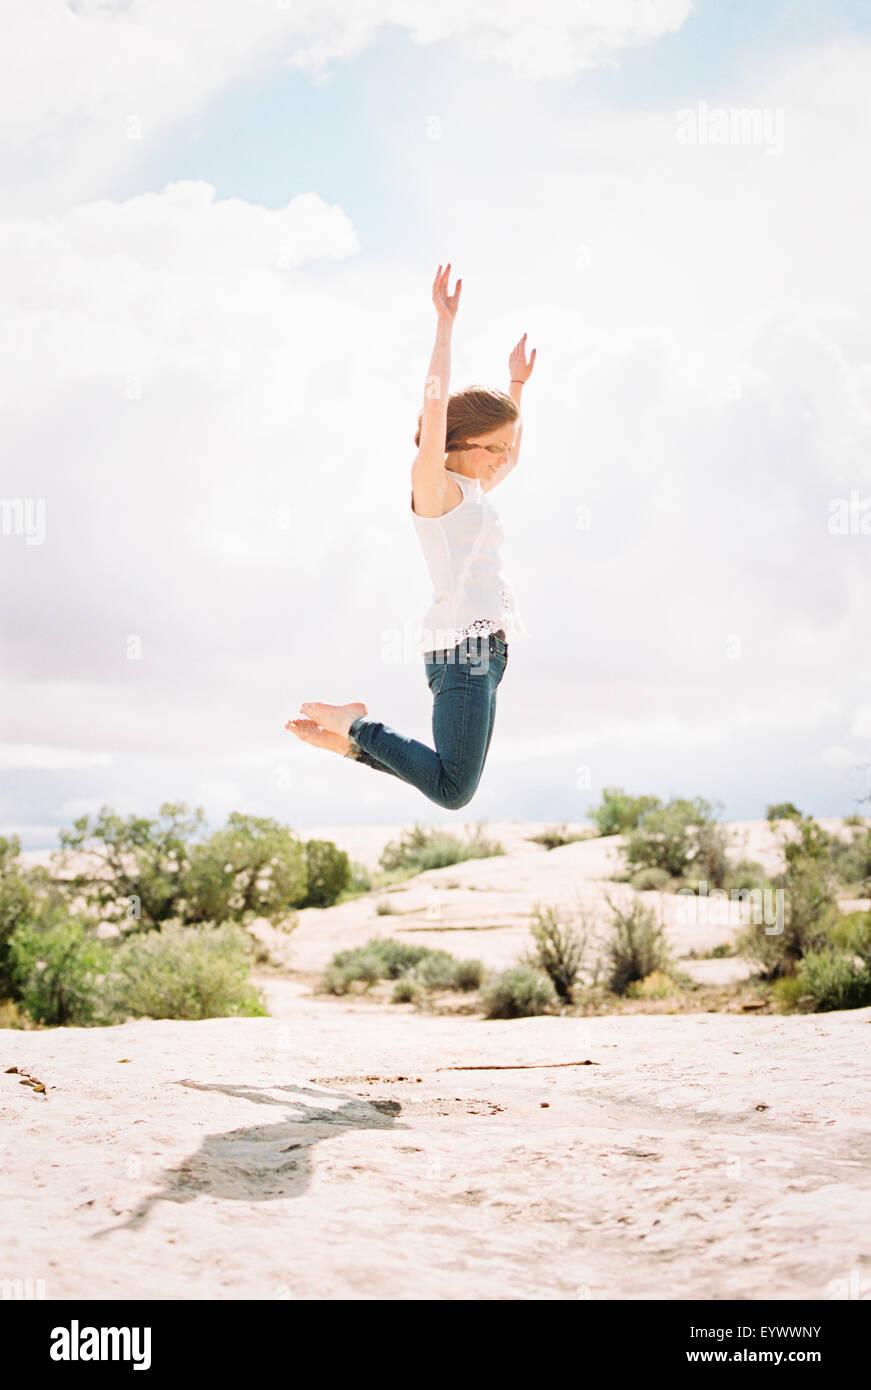 Barefoot woman jumping up in the air - Stock Image